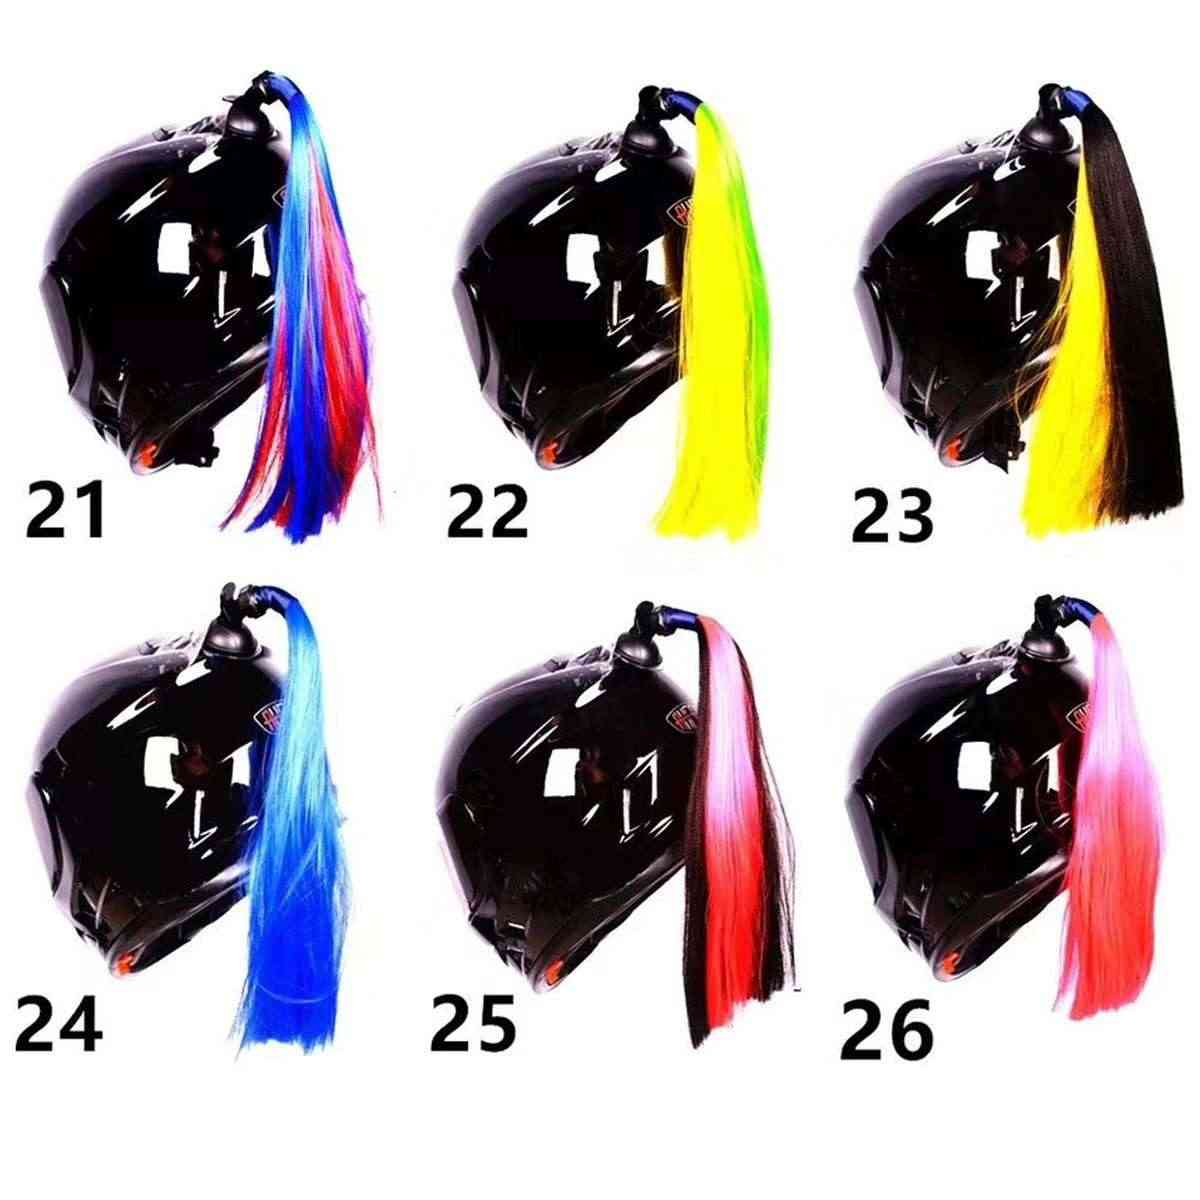 30cm Motorcycle Bike Gradient Ramp Helmet Sucker Removable Braid Pigtail Ponytail Straight Hair Mix Color Dirt Bike Ski Street